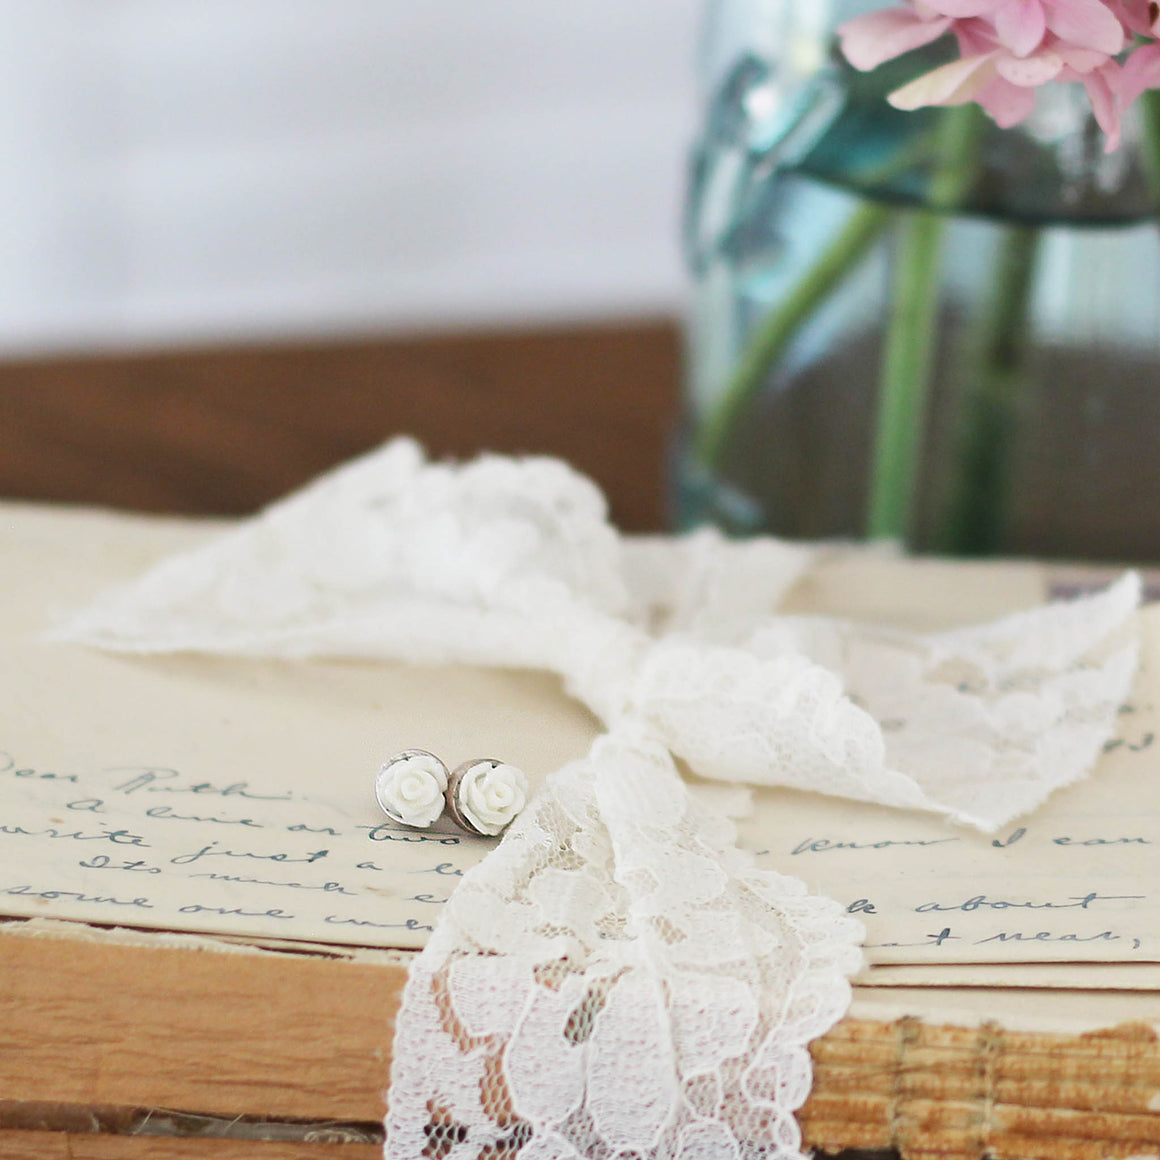 Post Rose Earrings White laying on vintage books